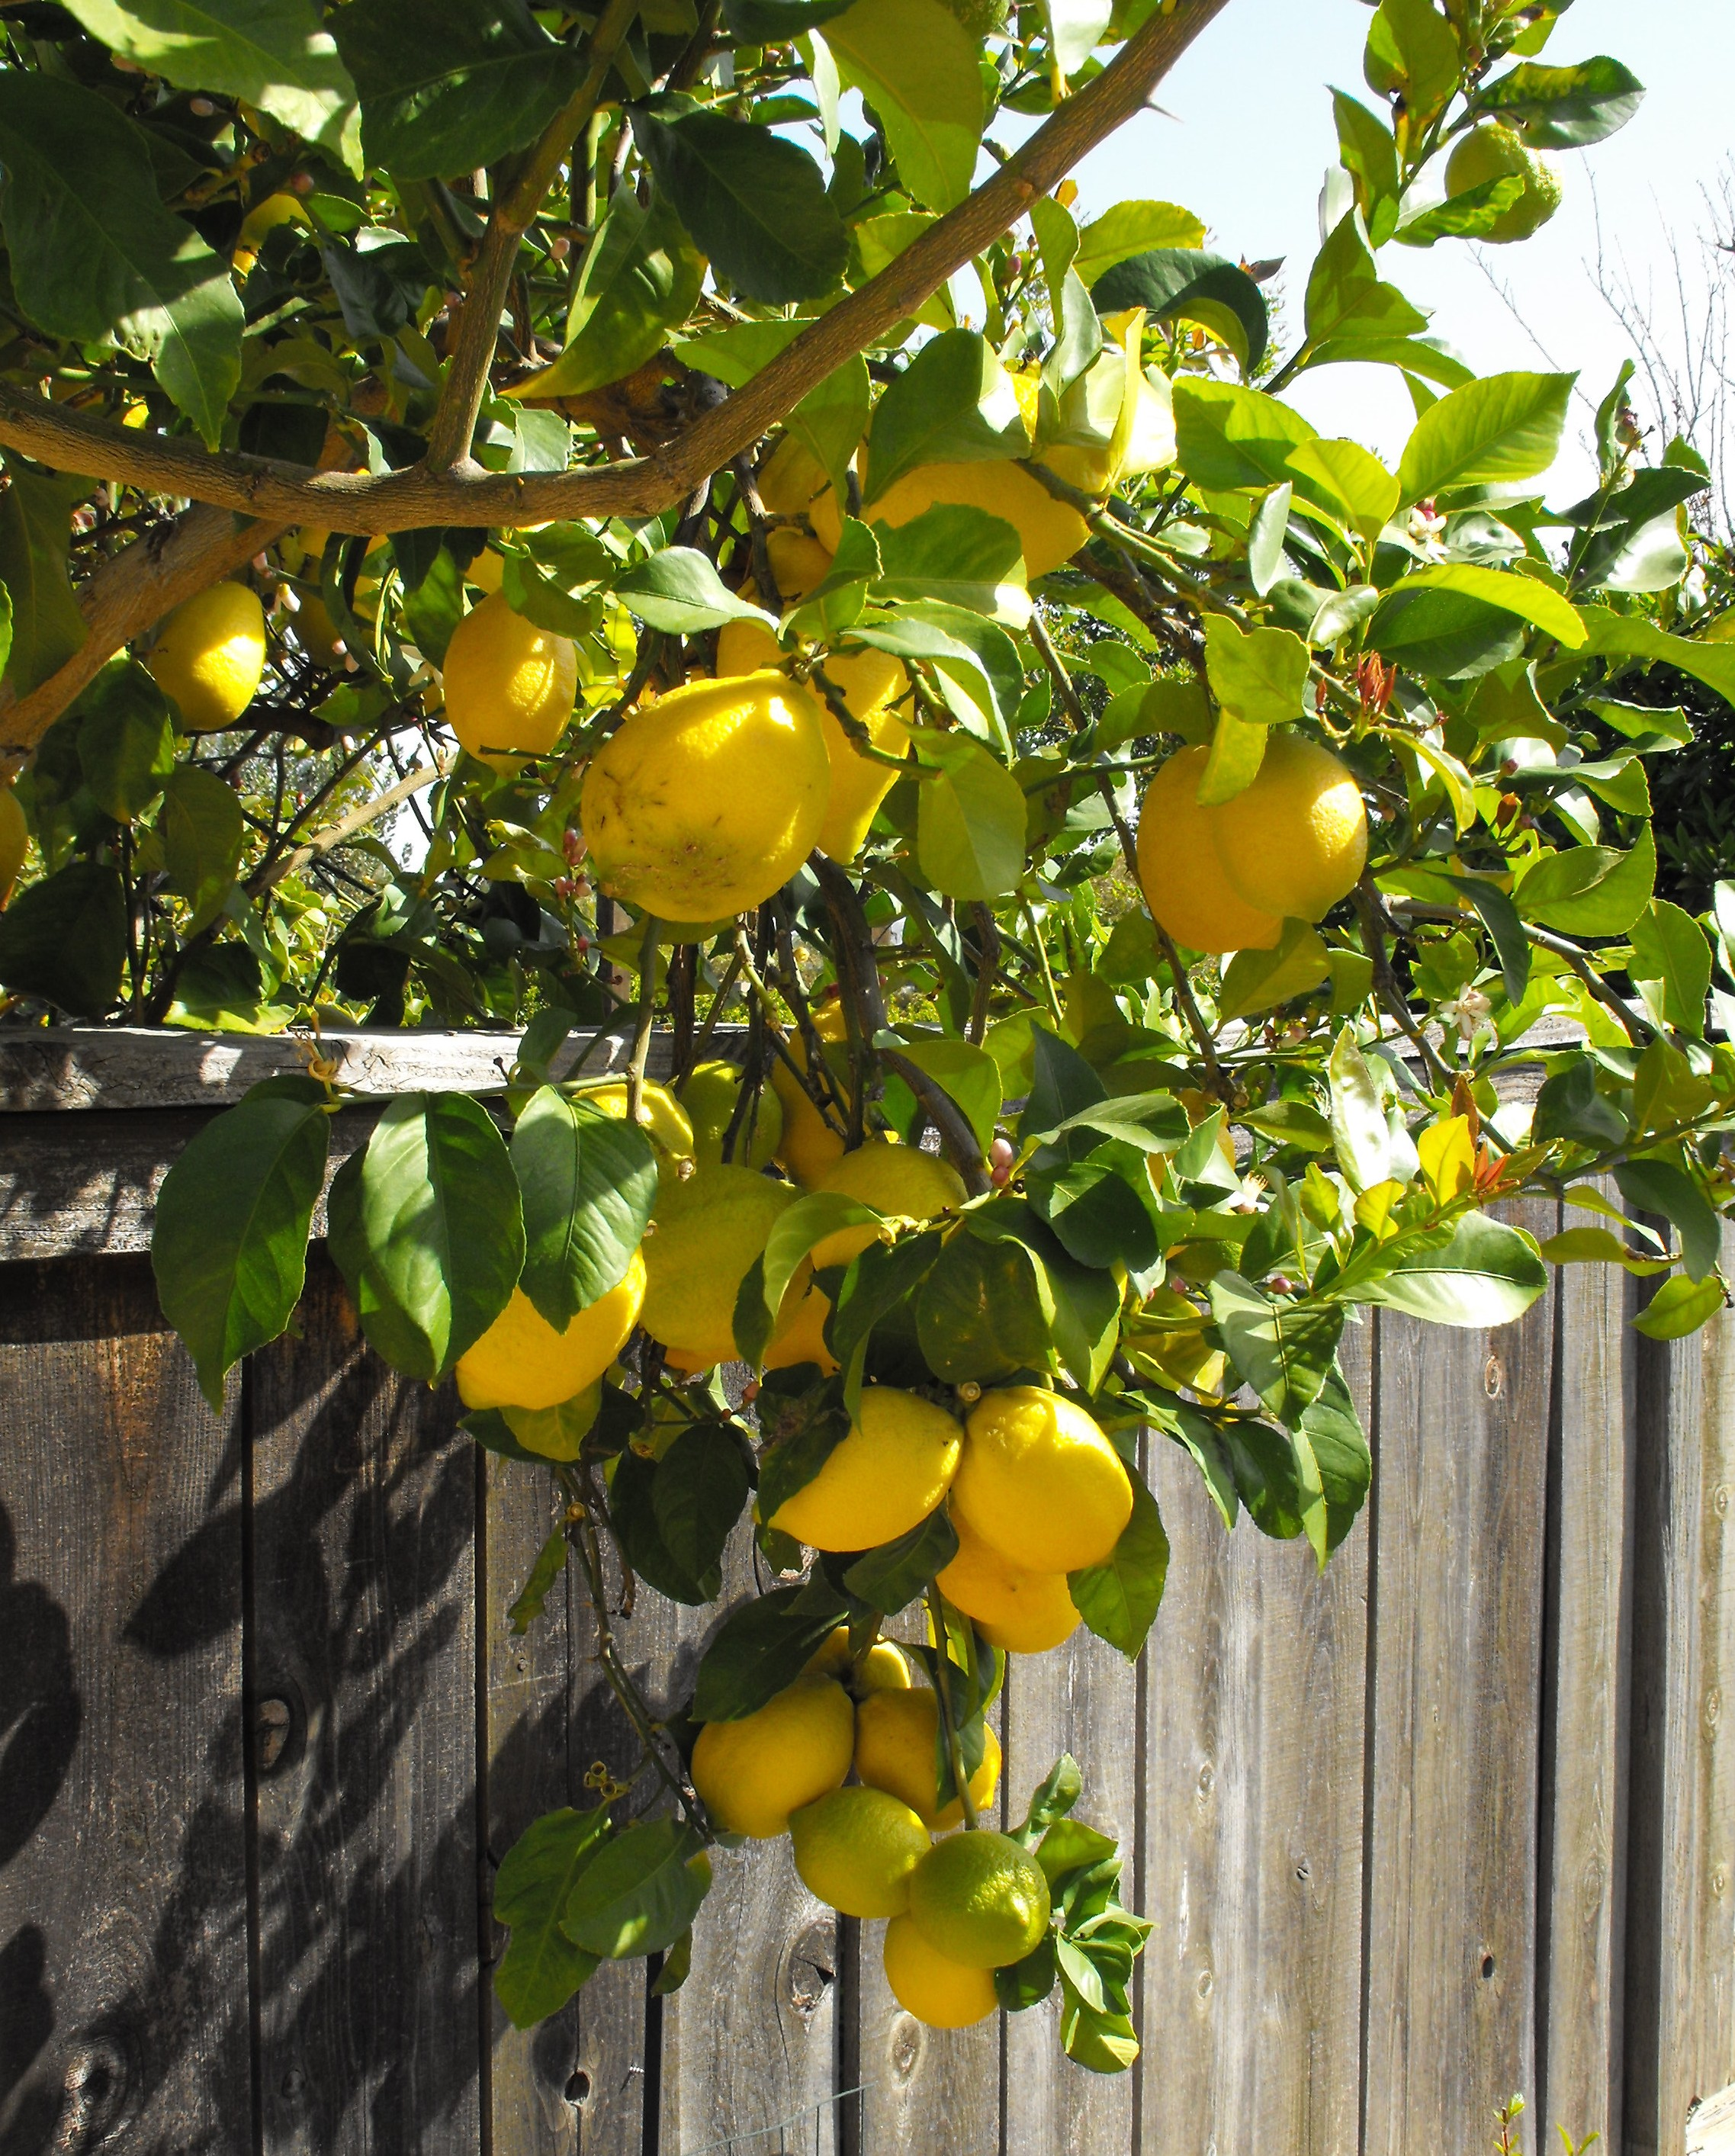 File:Eureka-lemon.jpg